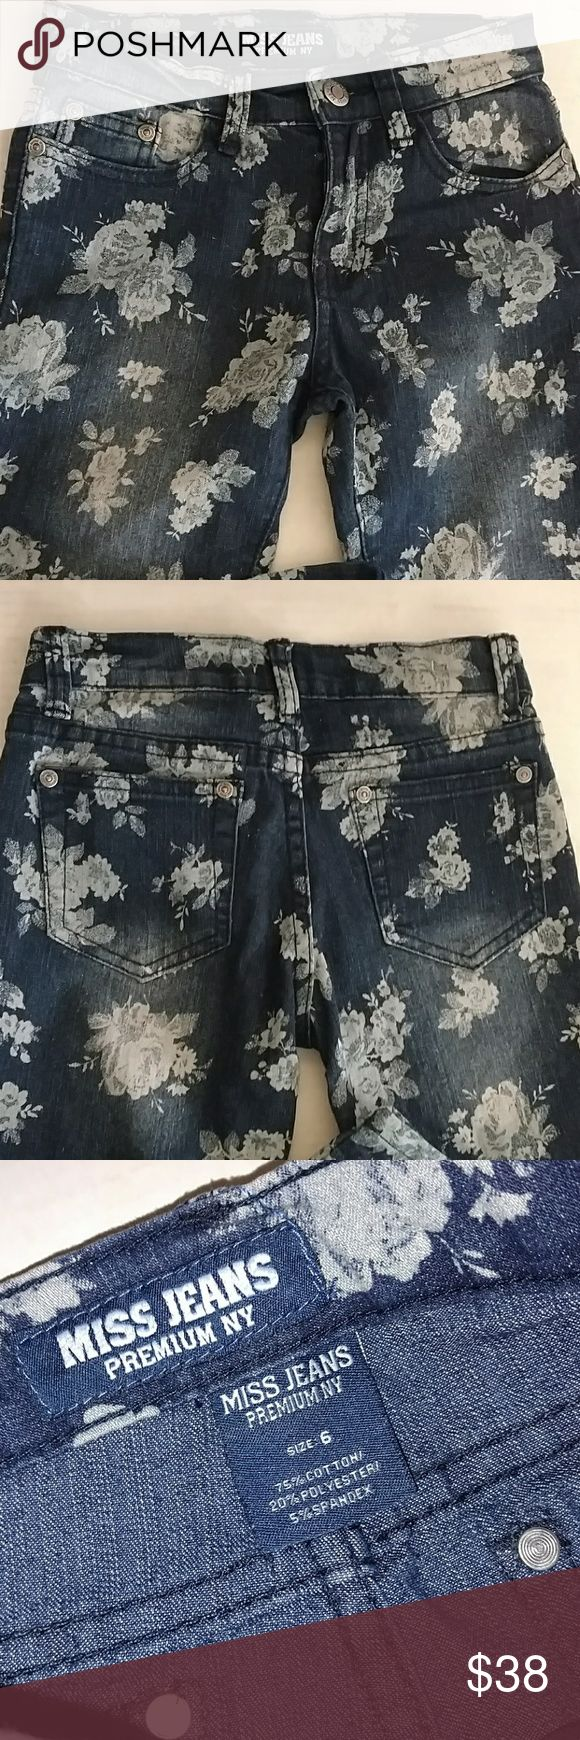 GIRL'S MISS ME JEANS Design as Shown Great Condition !! Miss Me Bottoms Jeans